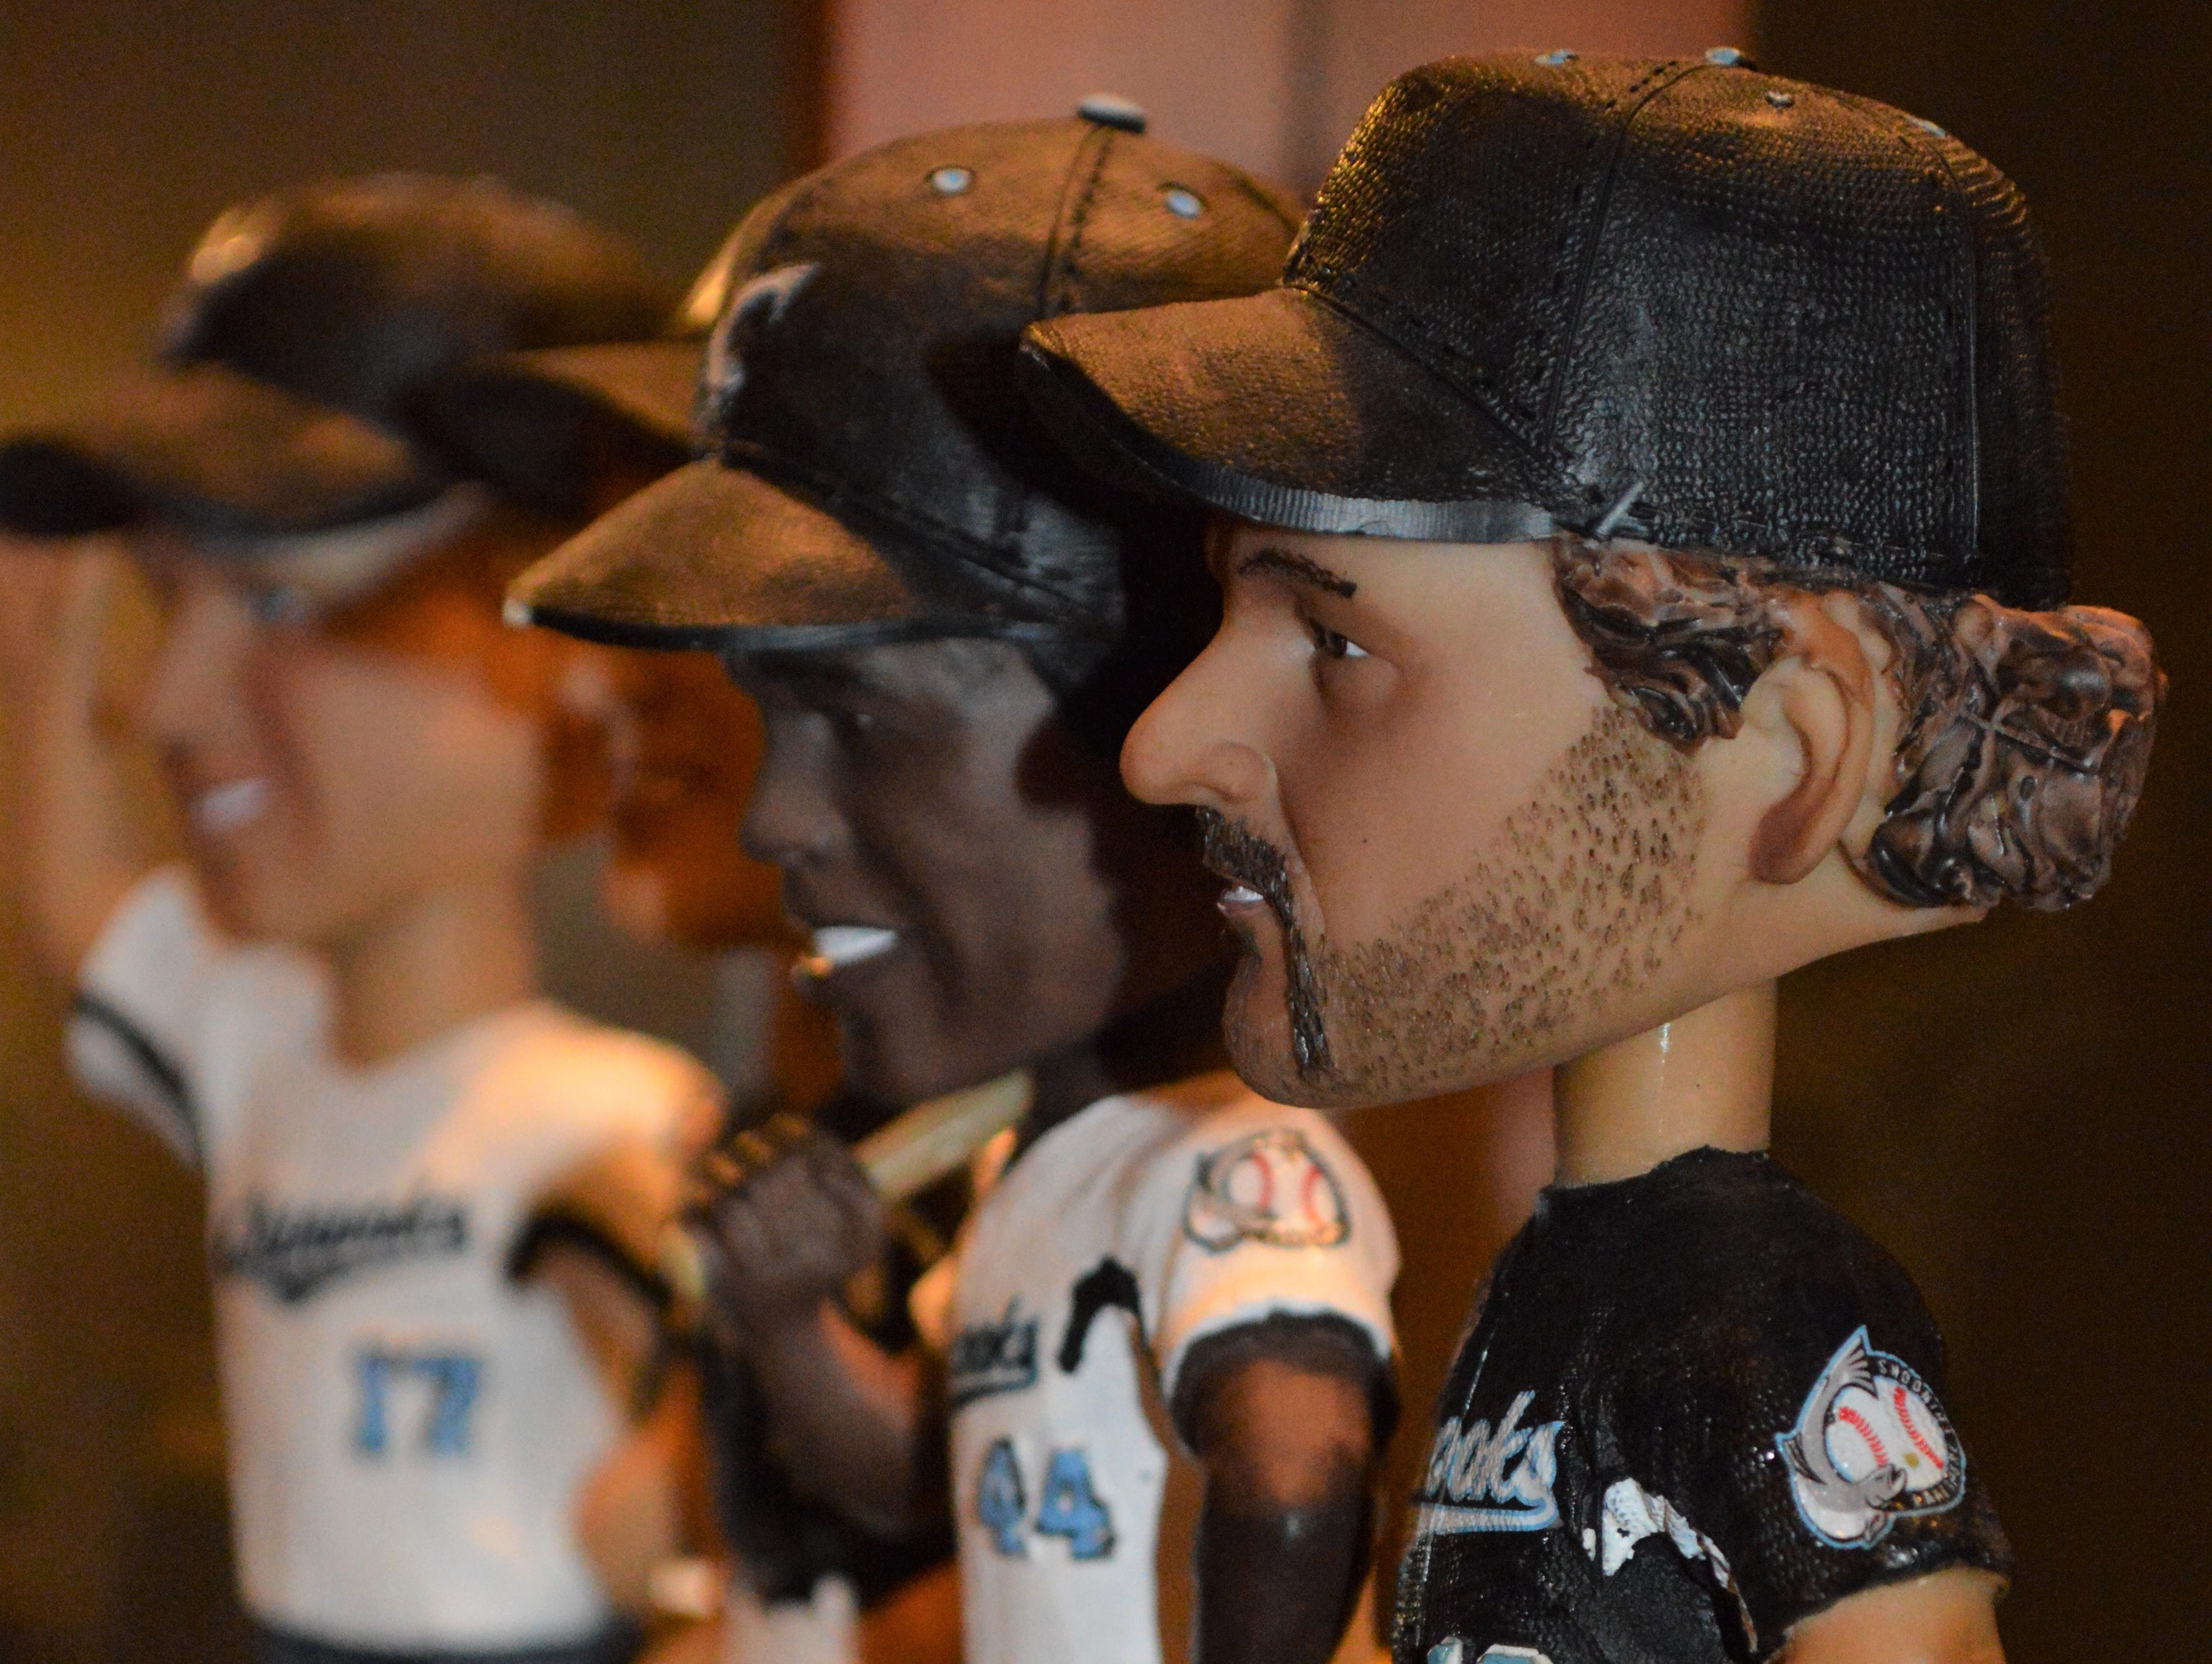 John Jastroch started collecting bobbleheads in 2007.